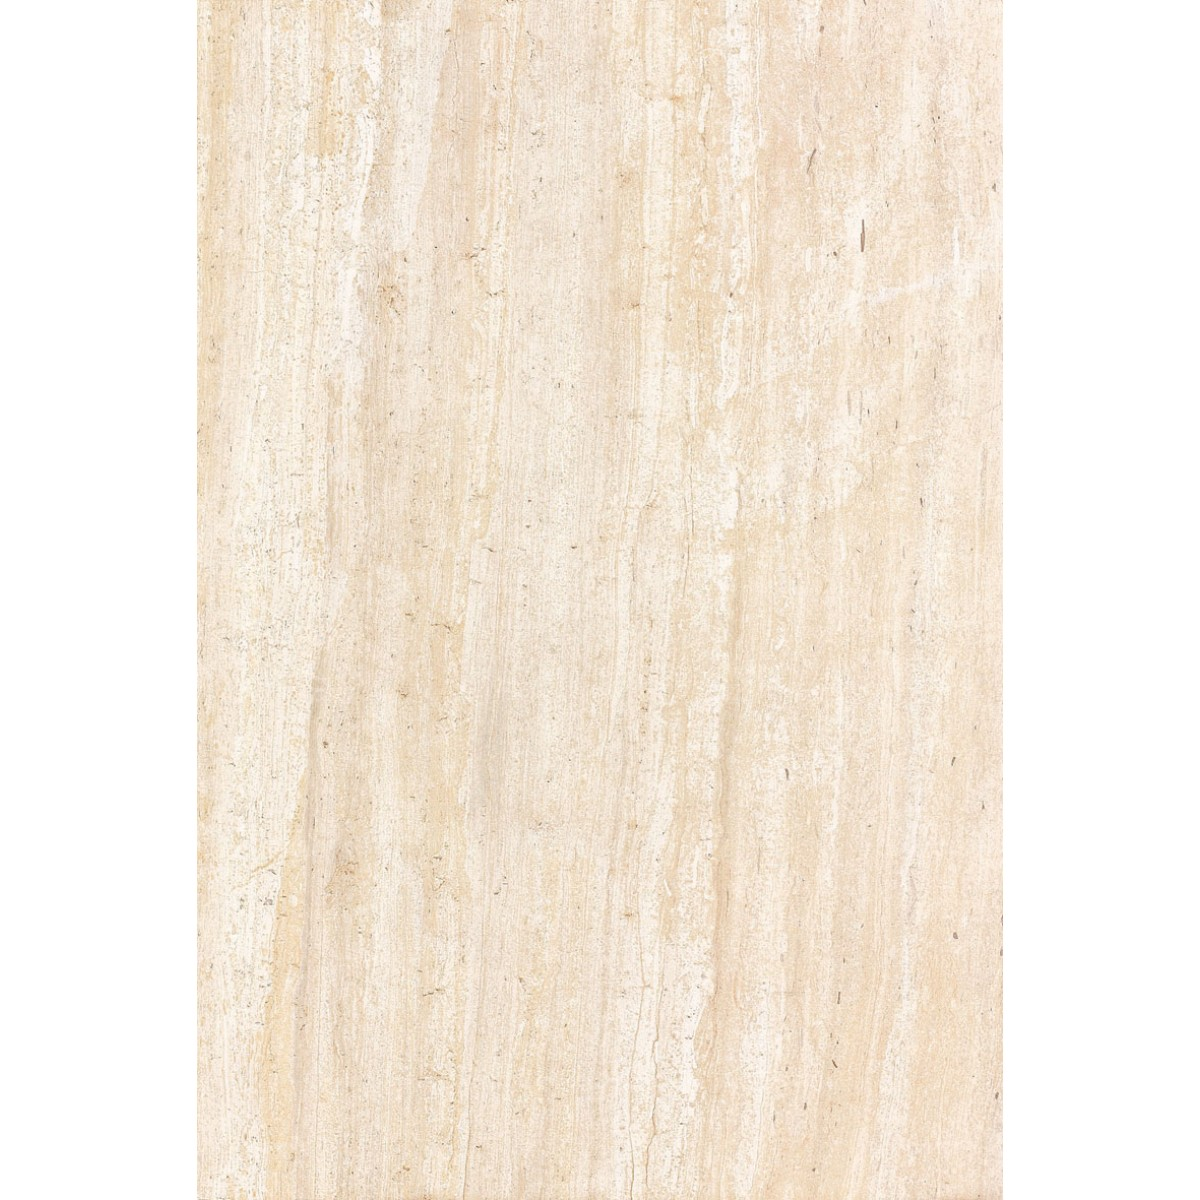 Light Gingko Beige 60x90x1,2cm poliert